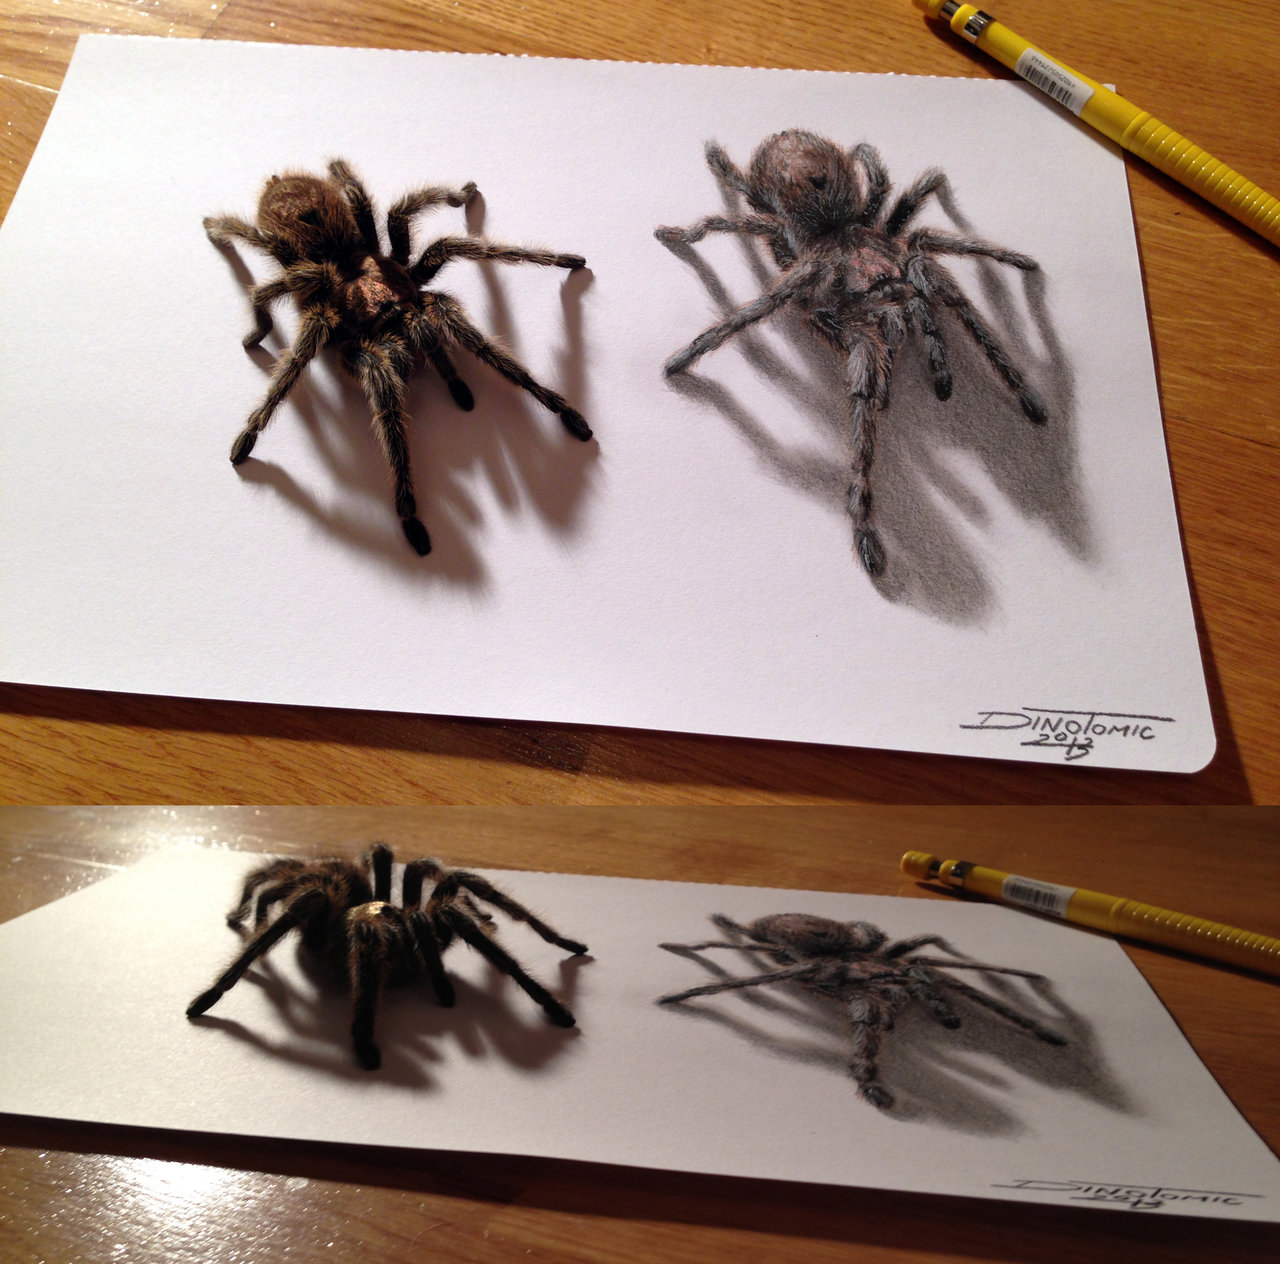 Drawn spider realistic AtomiccircuS DeviantArt AtomiccircuS Spider by